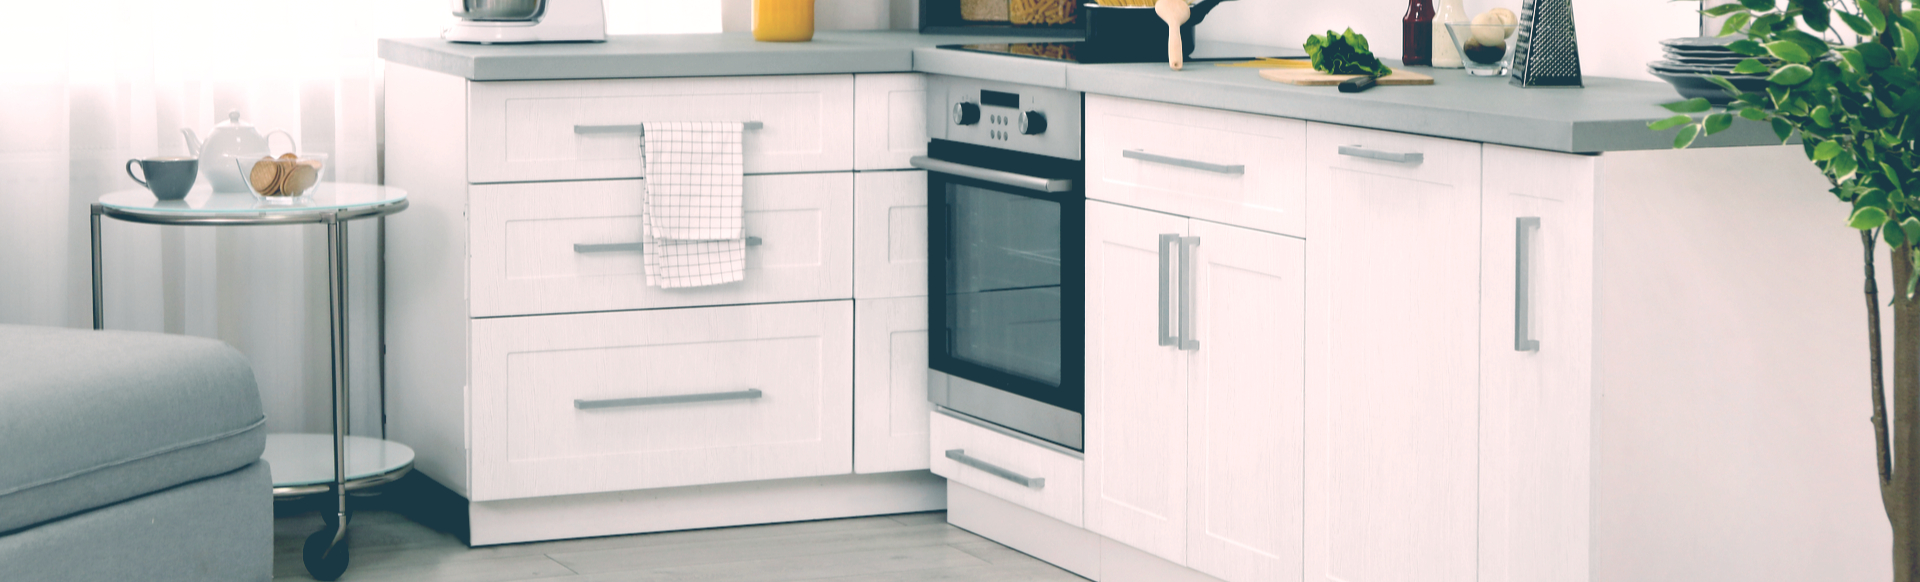 RICH WOOD - Shaker Cabinets